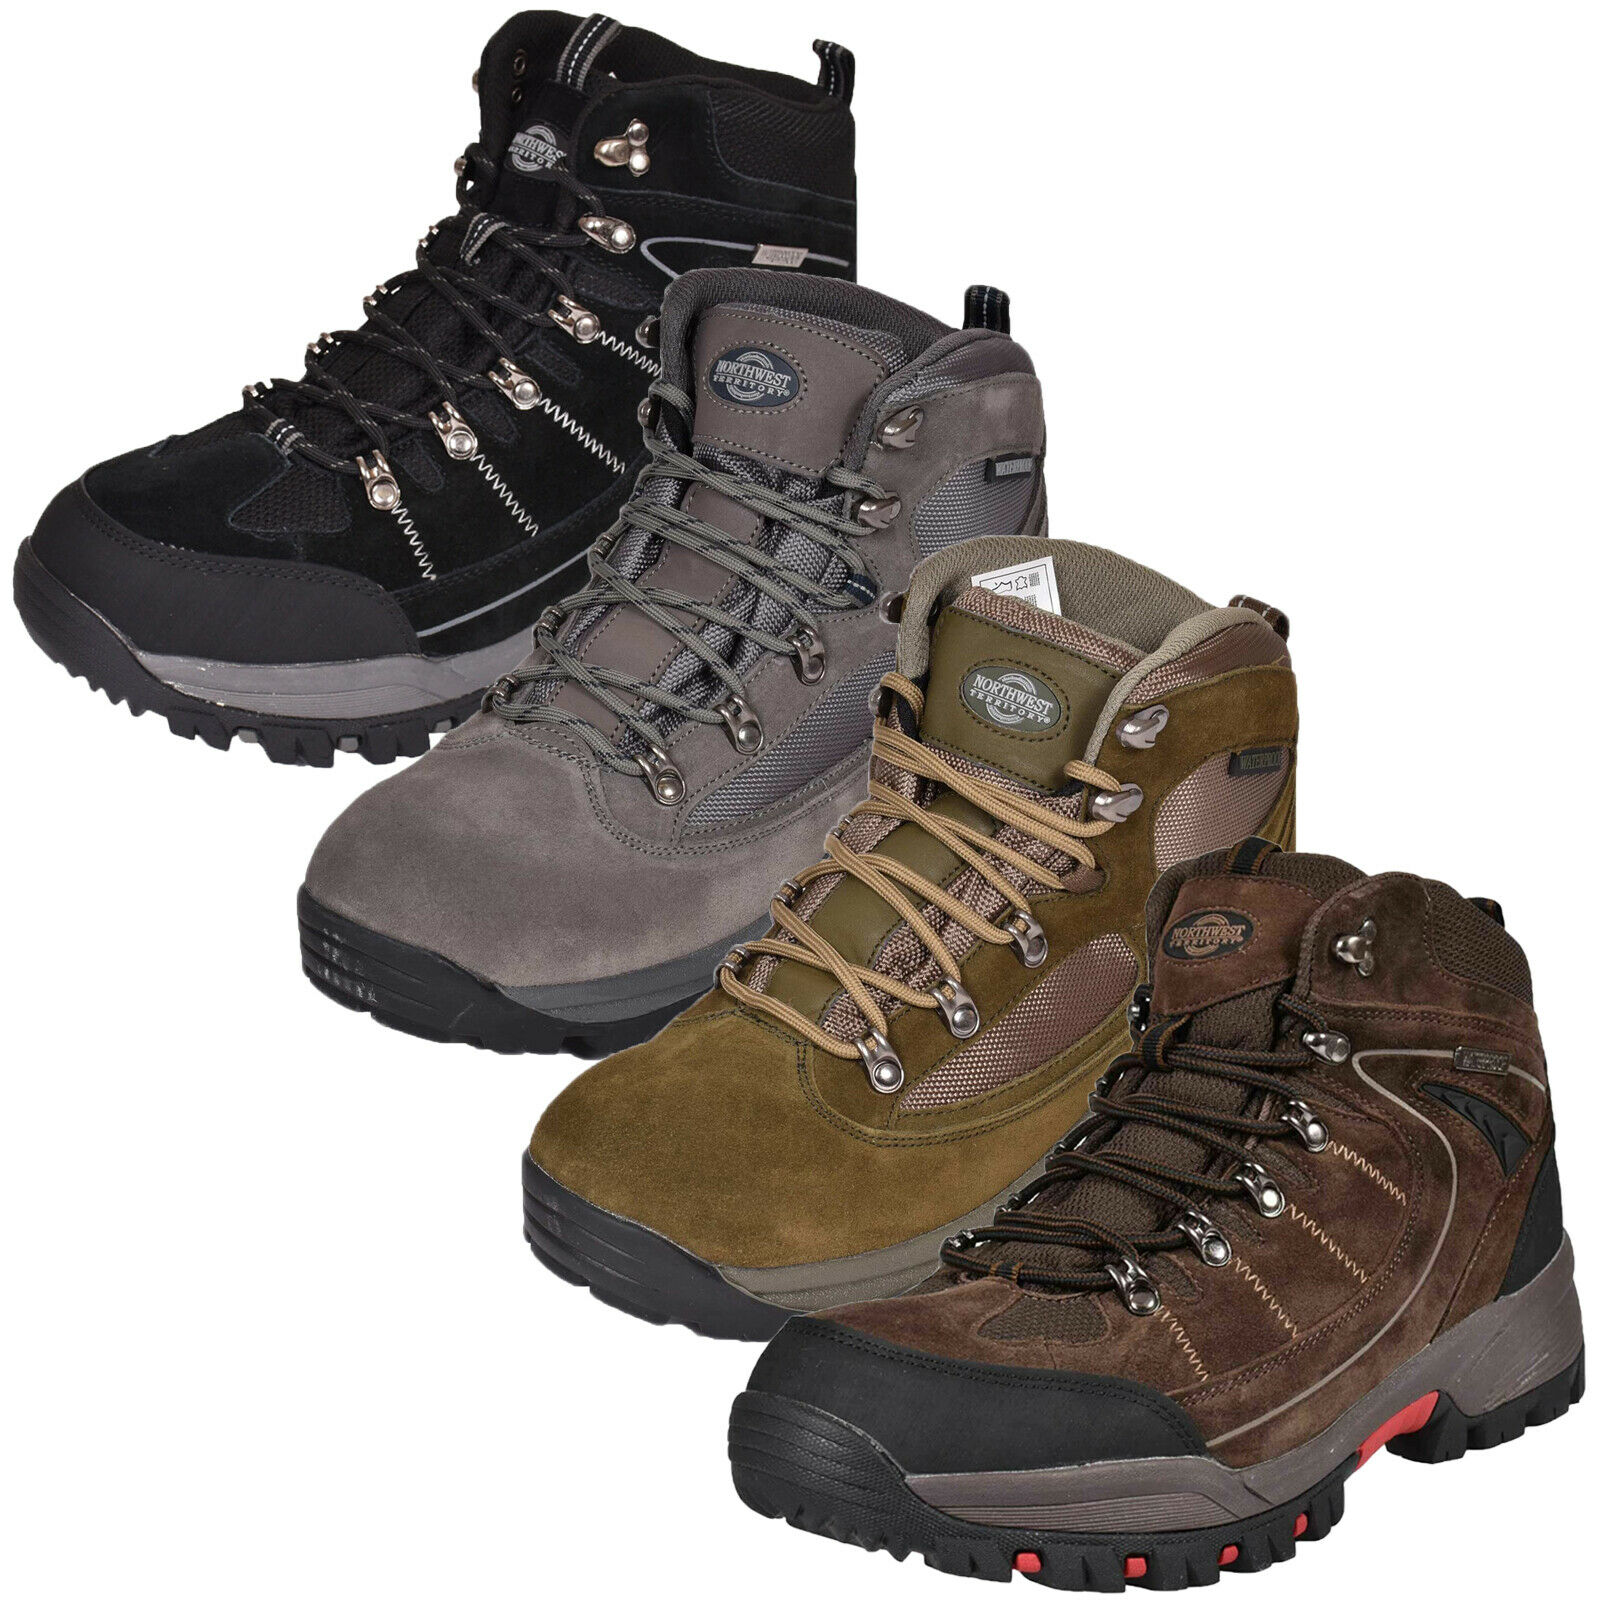 Norhtwest Mens Leather Walking Hiking Trail Waterproof Ankle High Rise  Boot shoes  fantastic quality